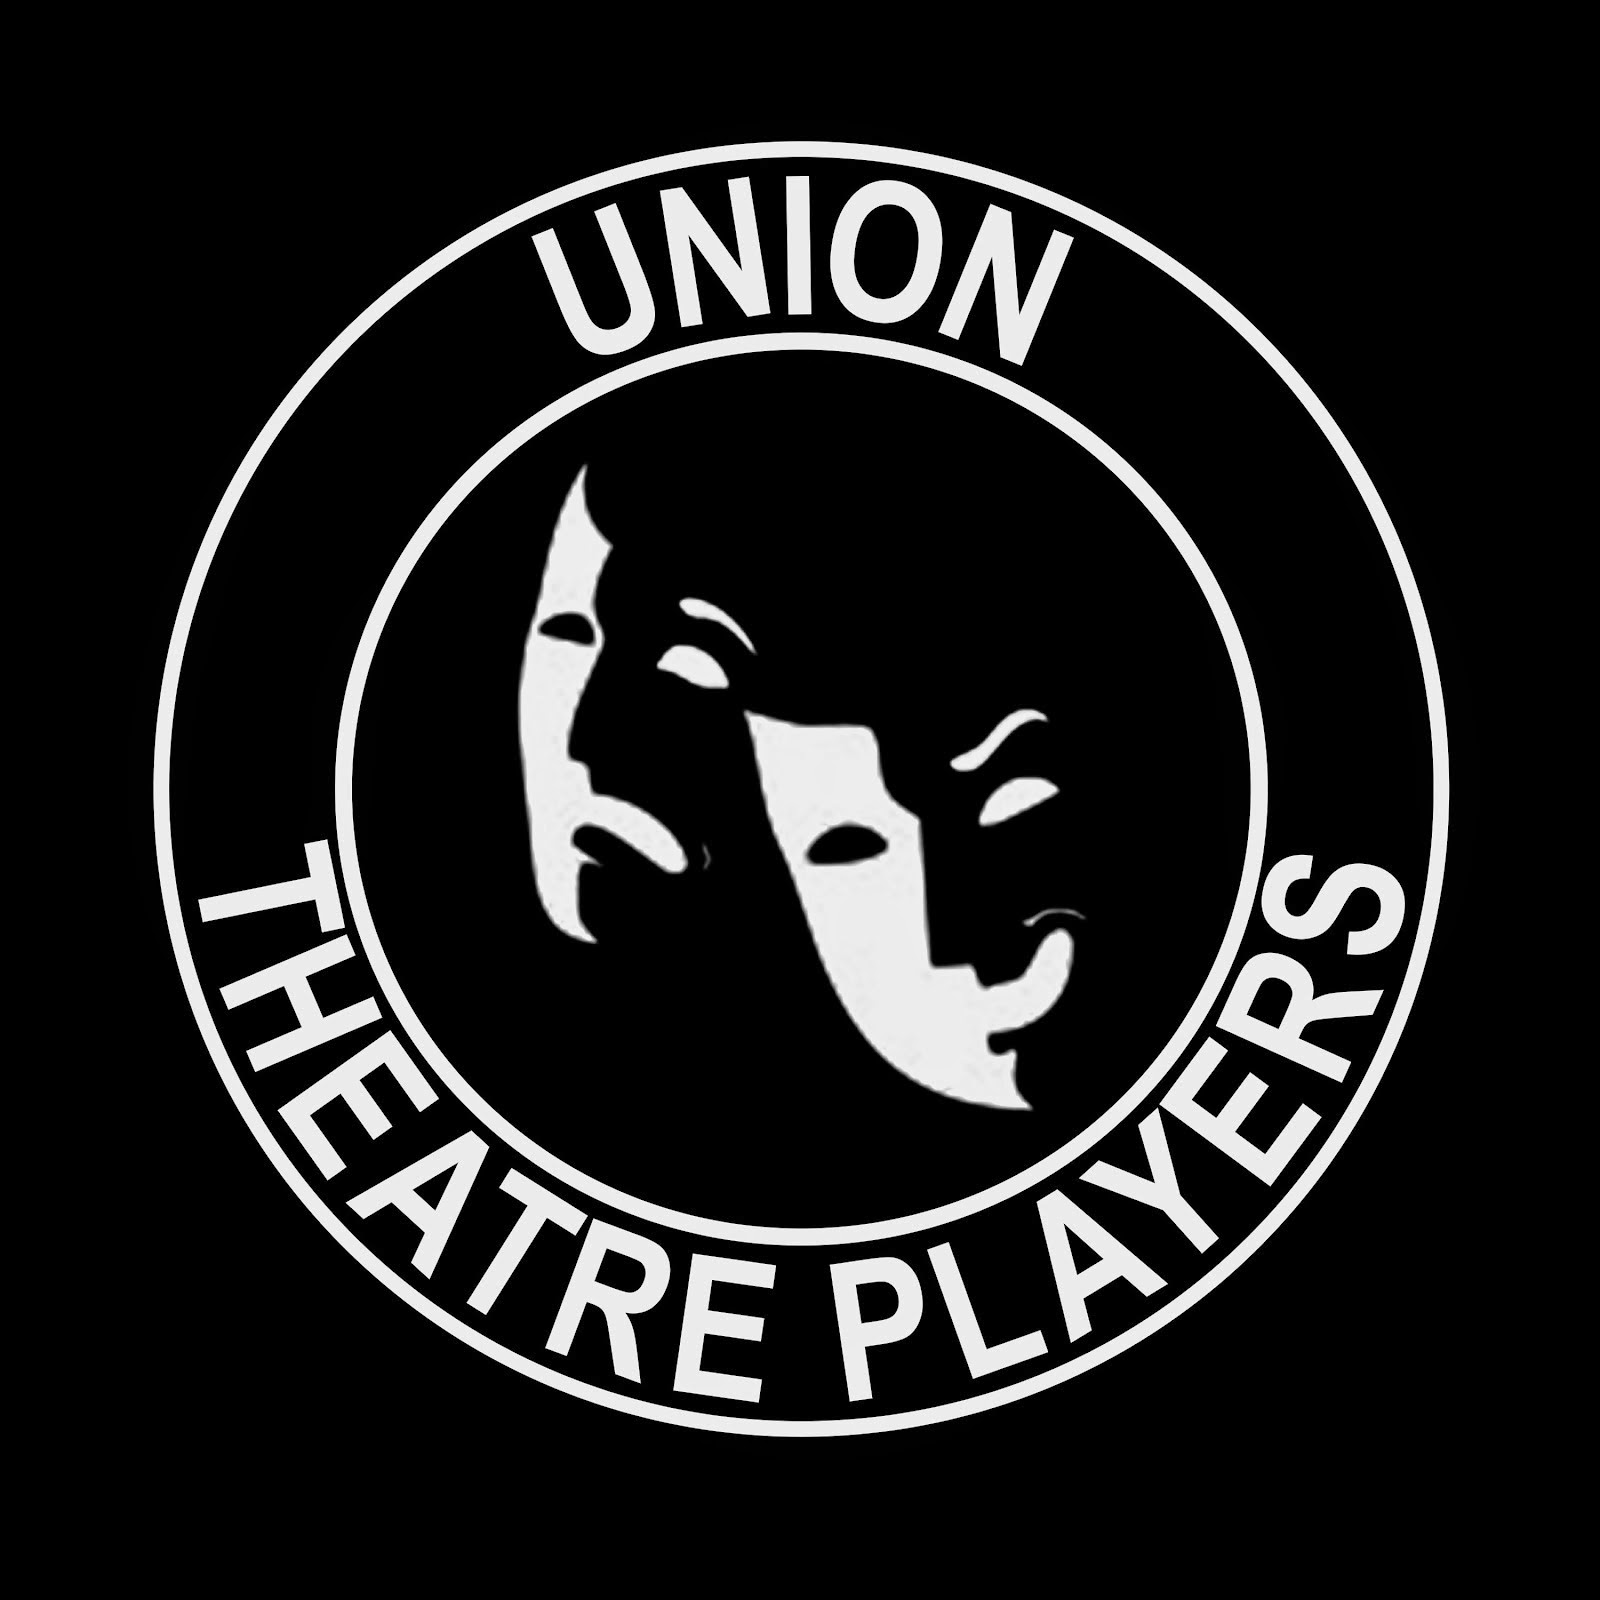 Union Theatre Players